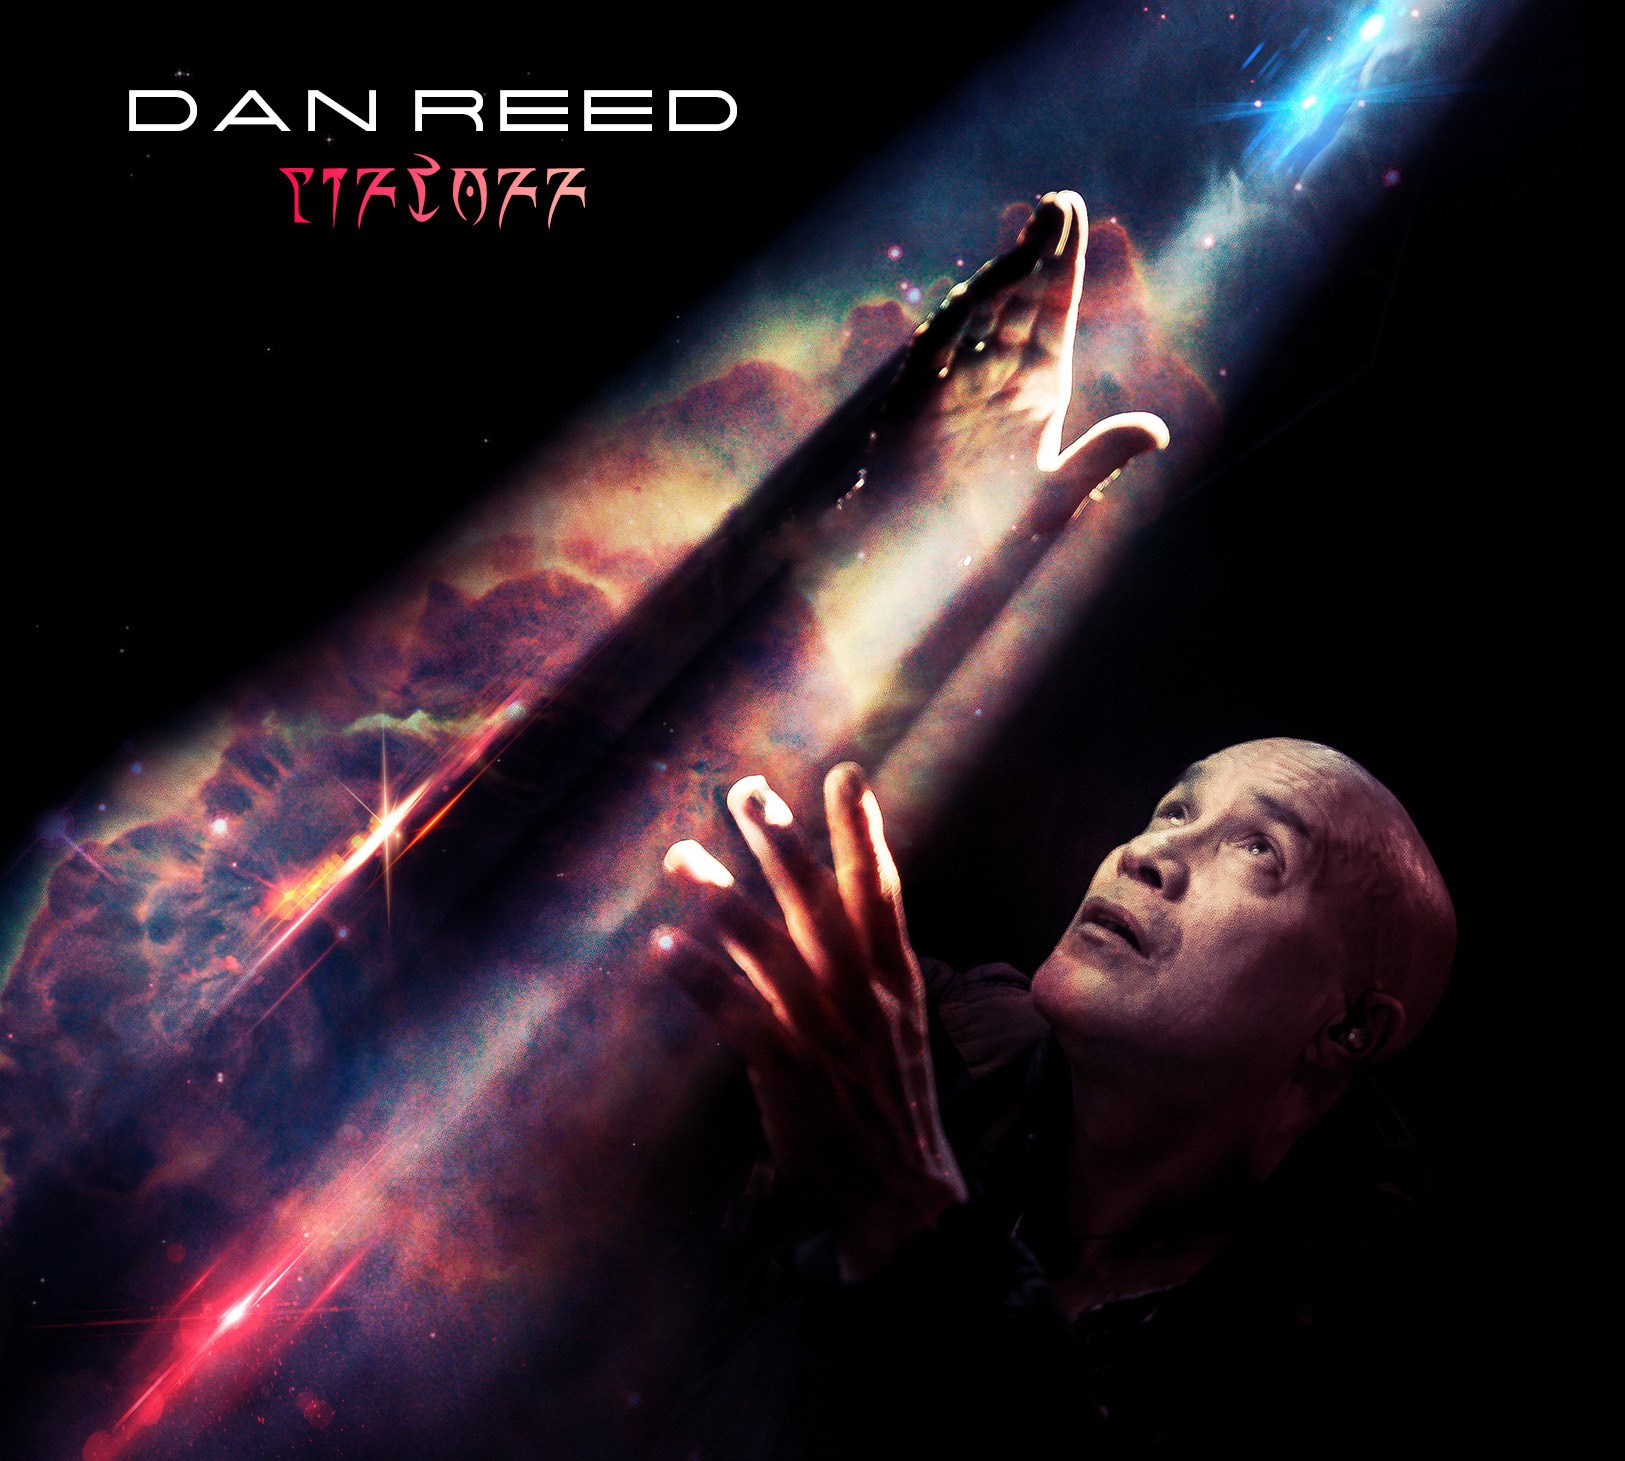 Liftoff Reaching for the stars with Dan Reed